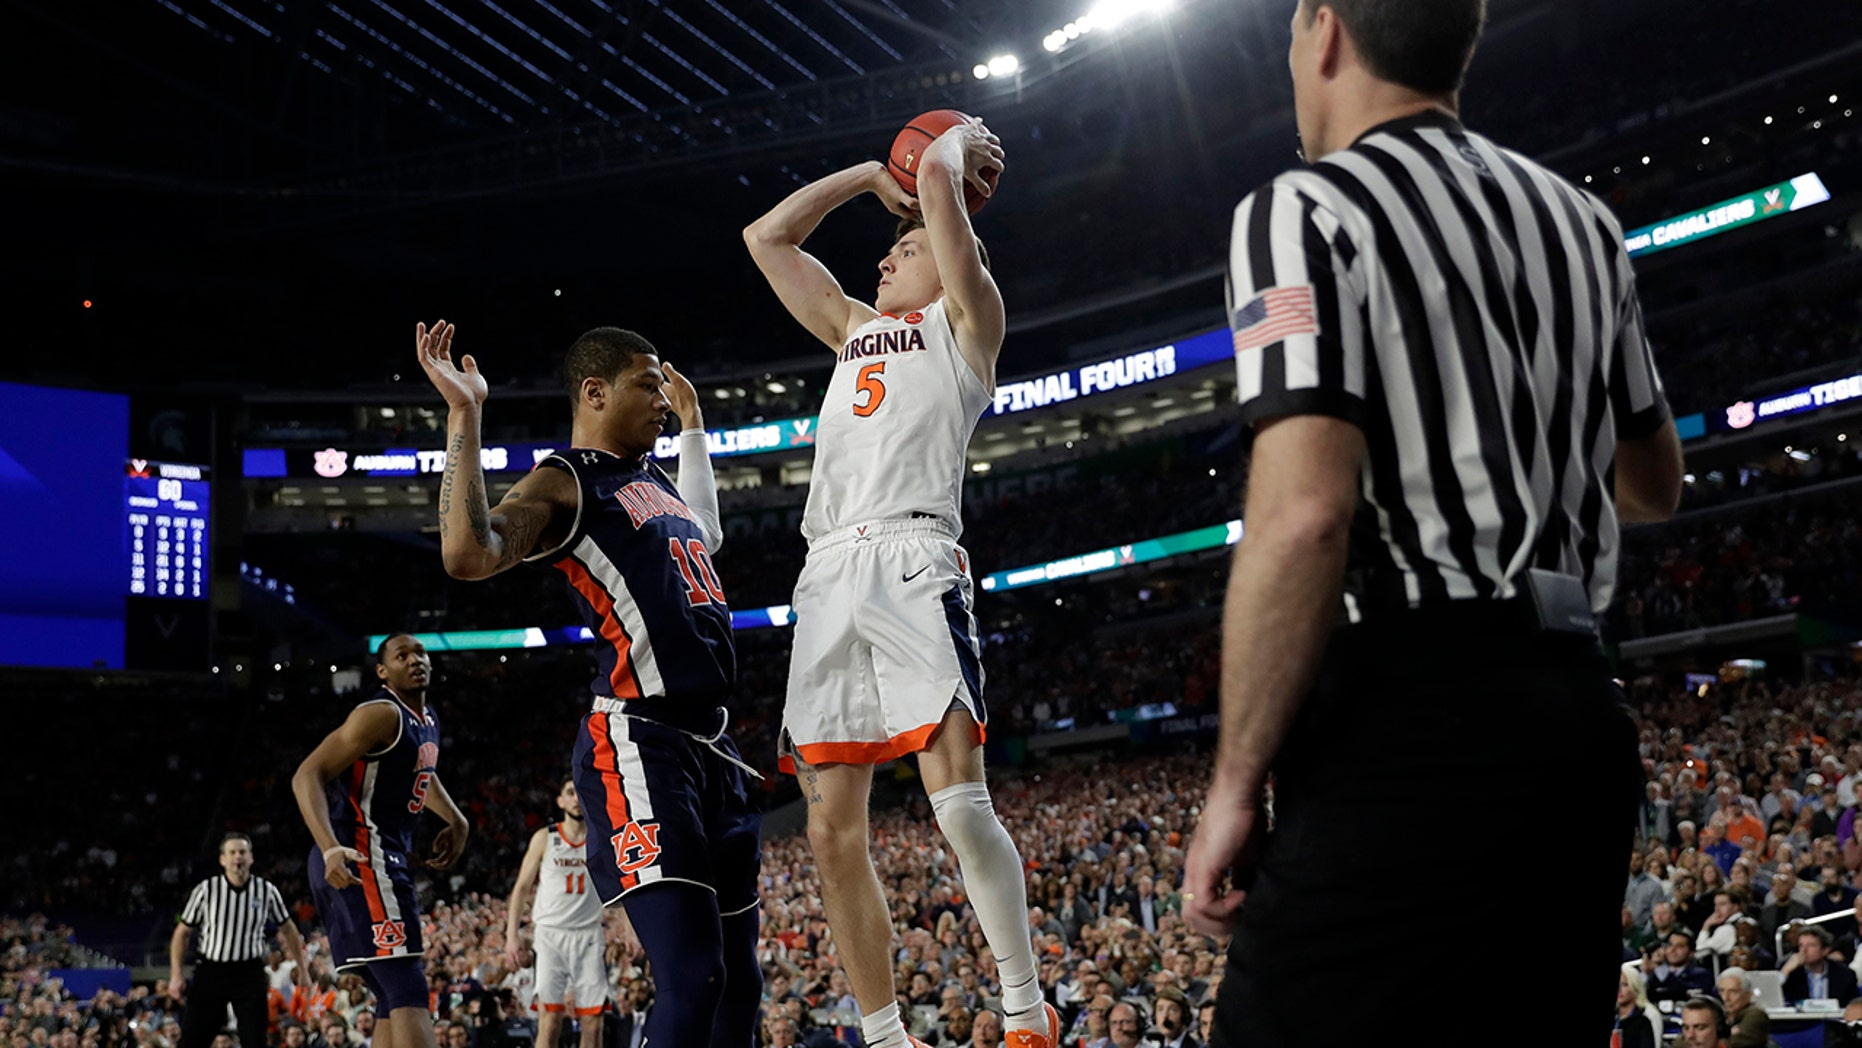 Virginia's Kyle Guy (5) takes a shot as Auburn's Samir Doughty (10) was called foul during the second half in the semifinals of the Final Four NCAA college basketball tournament, Saturday, April 6, 2019, in Minneapolis. (Associated Press)